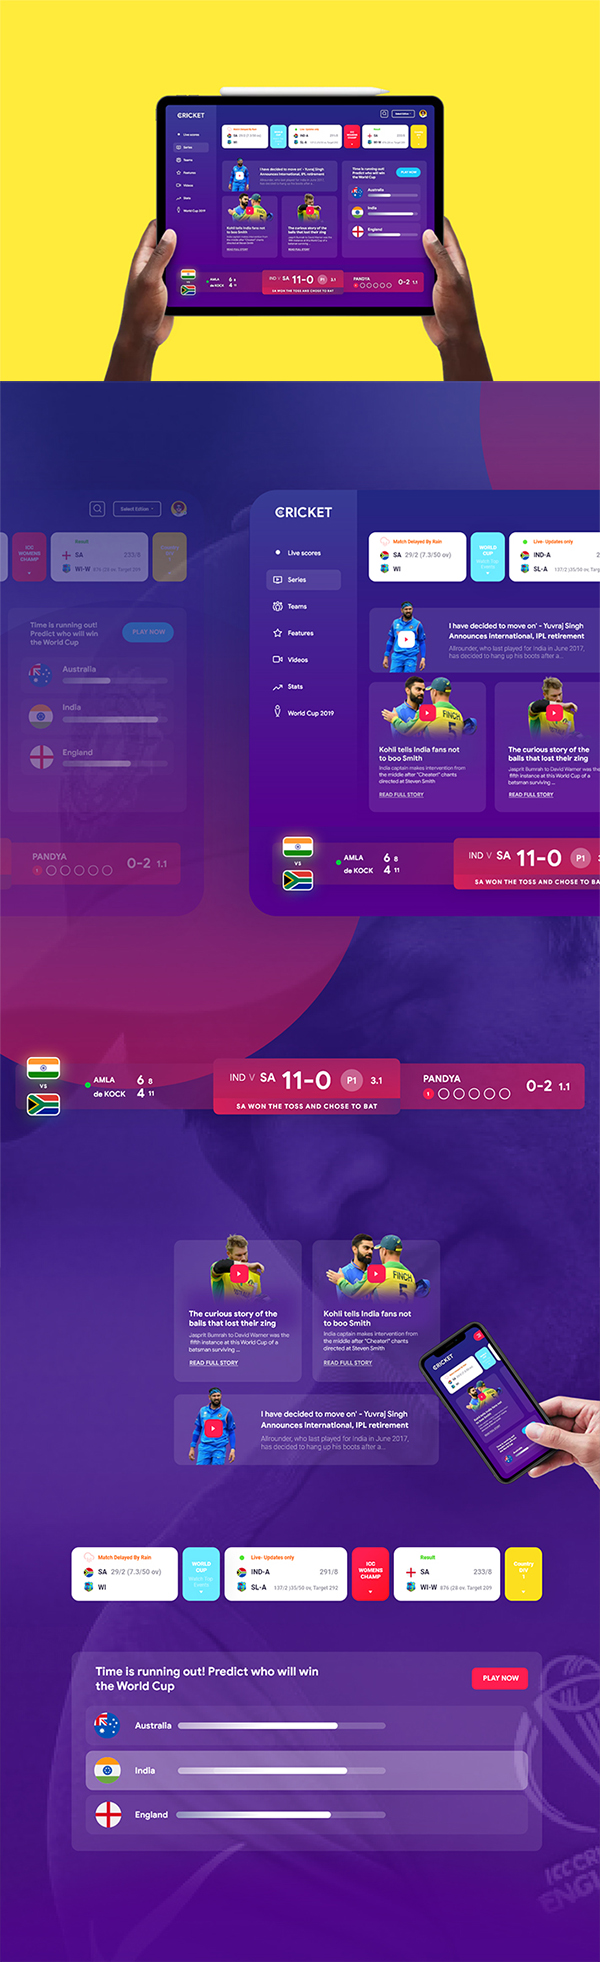 Free Download Awesome ICC Cricket World Cup App Ui (2019)